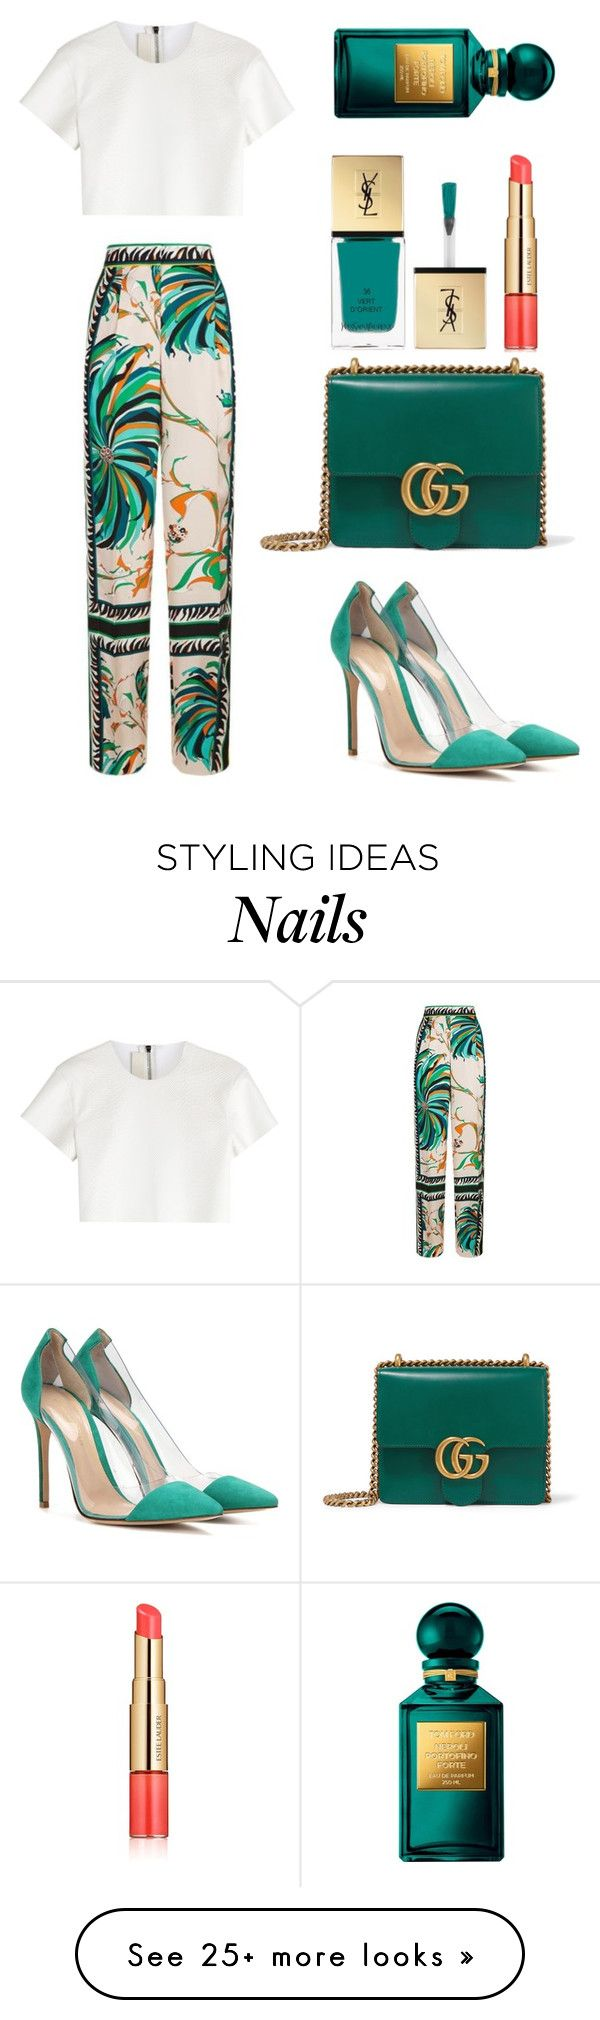 """Untitled #2156"" by ordinarydays on Polyvore featuring Emilio Pucci, Gianvito Rossi, Neil Barrett, Gucci, Yves Saint Laurent, Tom Ford and Estée Lauder"